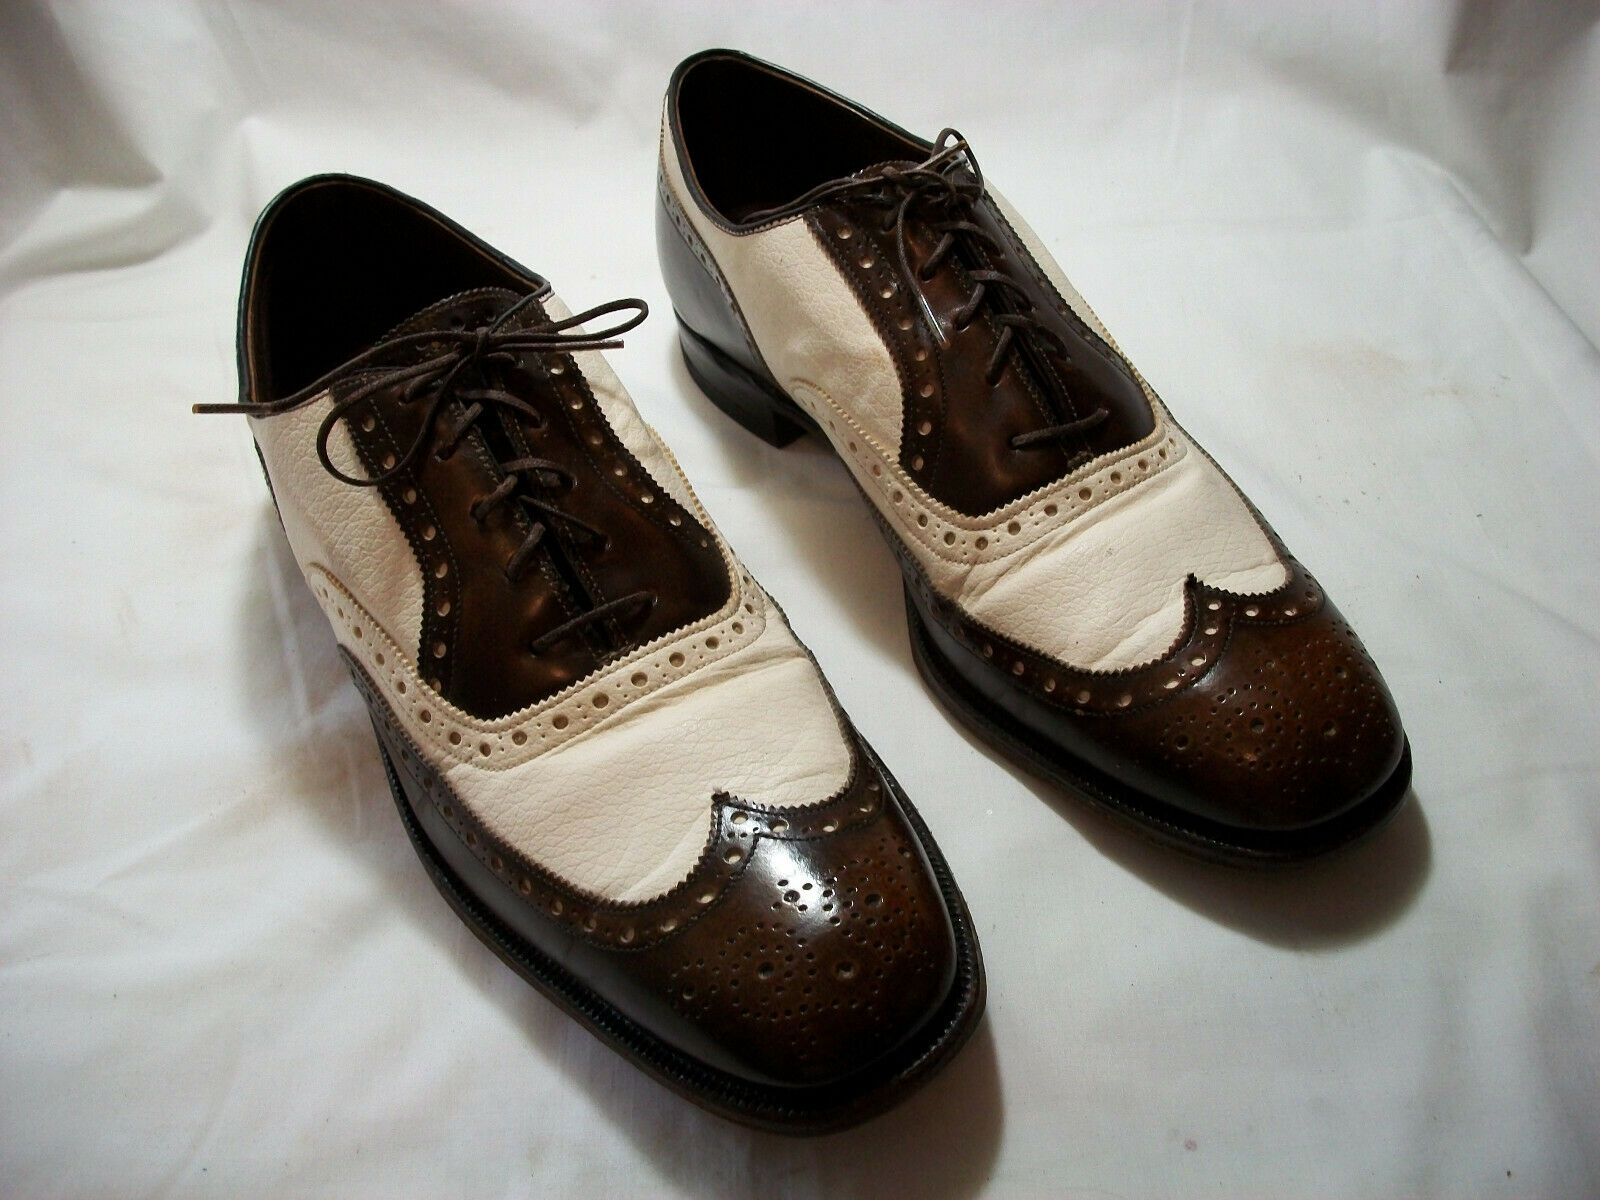 JOHNSTON AND MURPHY PRESIDENTS COLLECTION BROWN & WHITE SPECTATORS 10 1/2 C/A